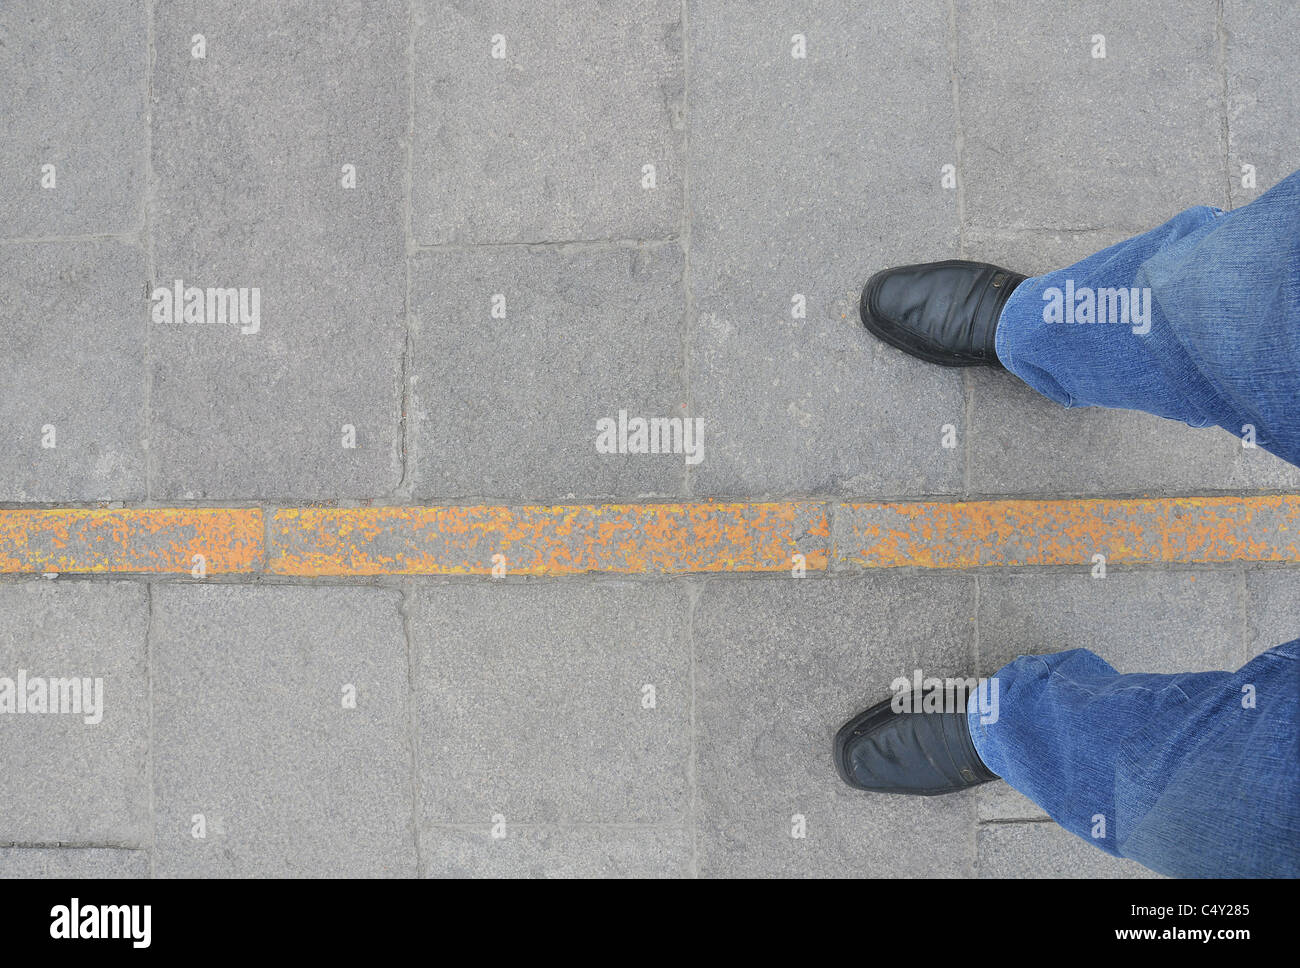 Straddling the equator, one foot in the northern hemisphere, one foot in the southern hemisphere, Mittad del Mundo - Stock Image